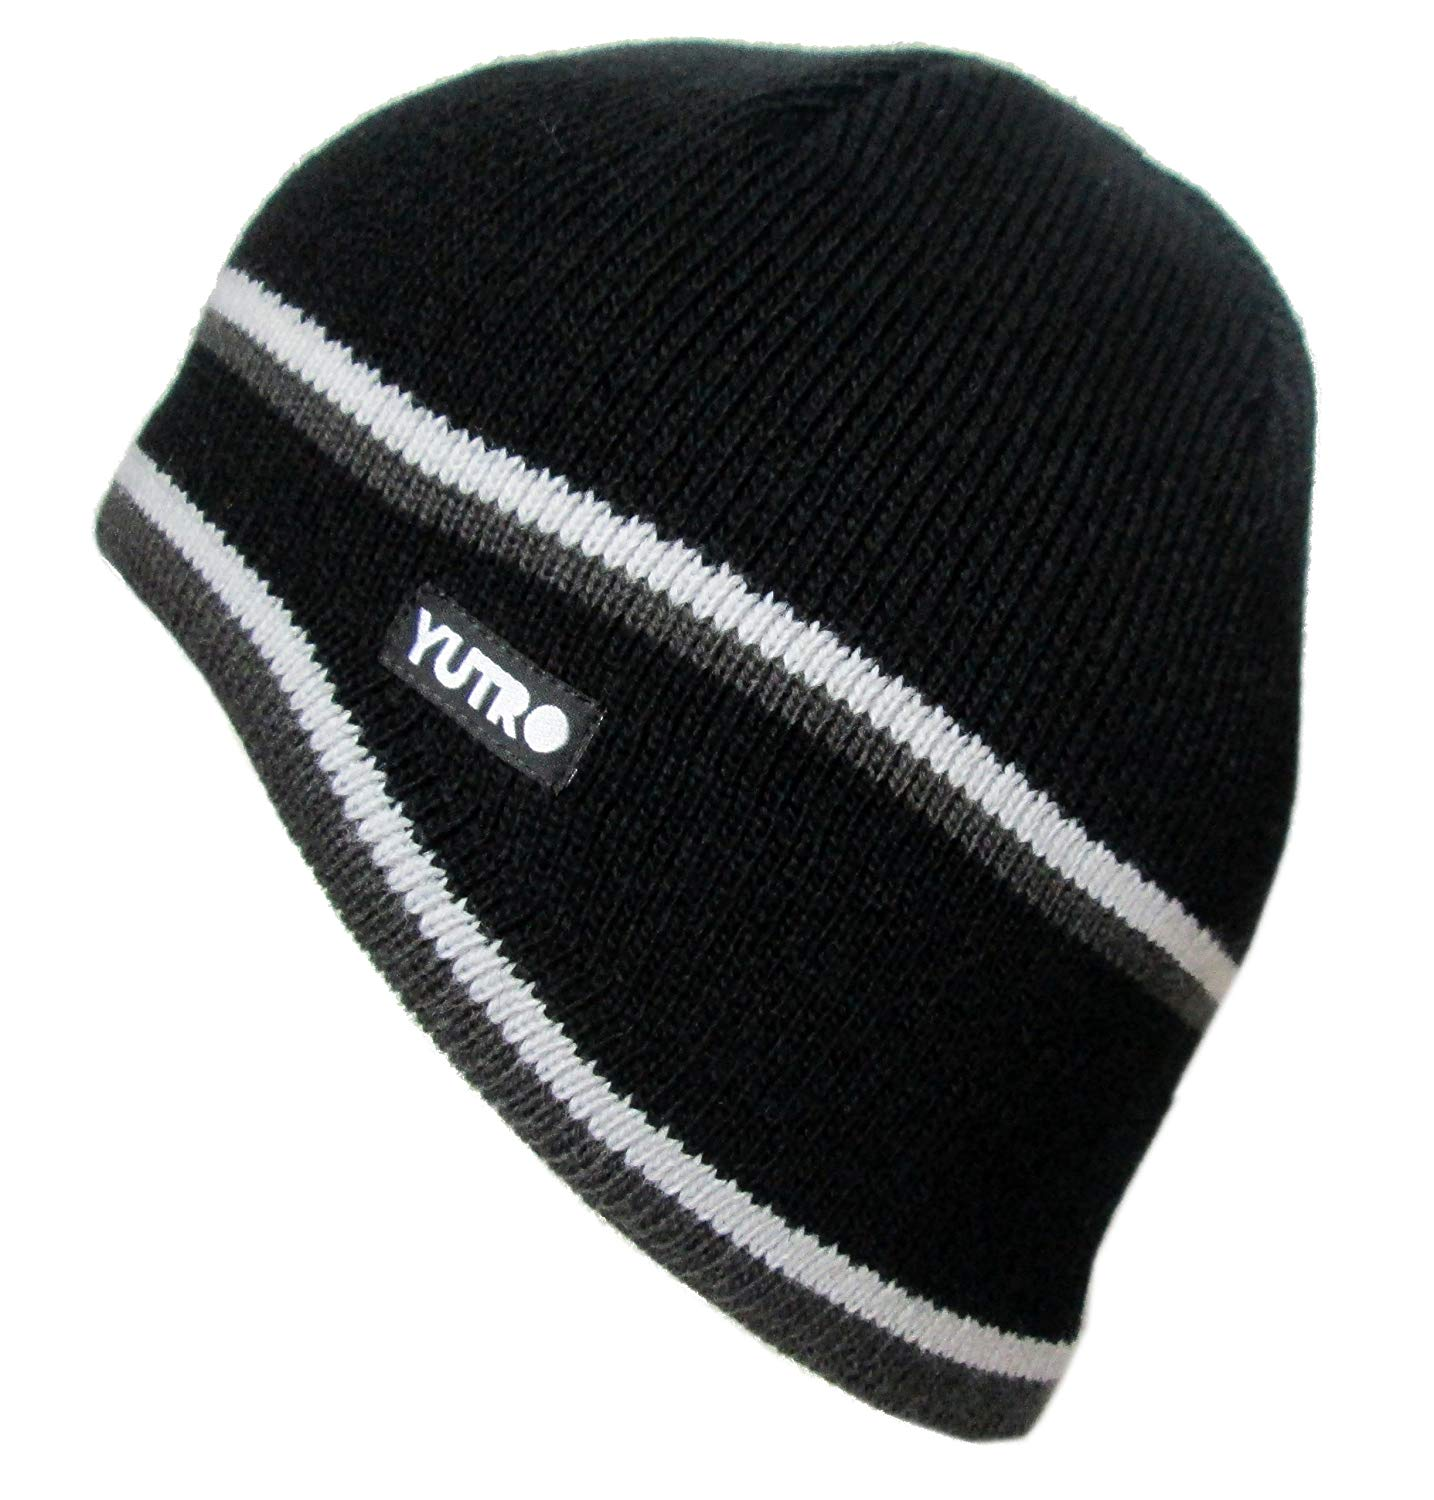 4331f253c8f Get Quotations · YUTRO Fashion Thinsulate Wool Ski Winter Beanie Hat With  Fleece Lining